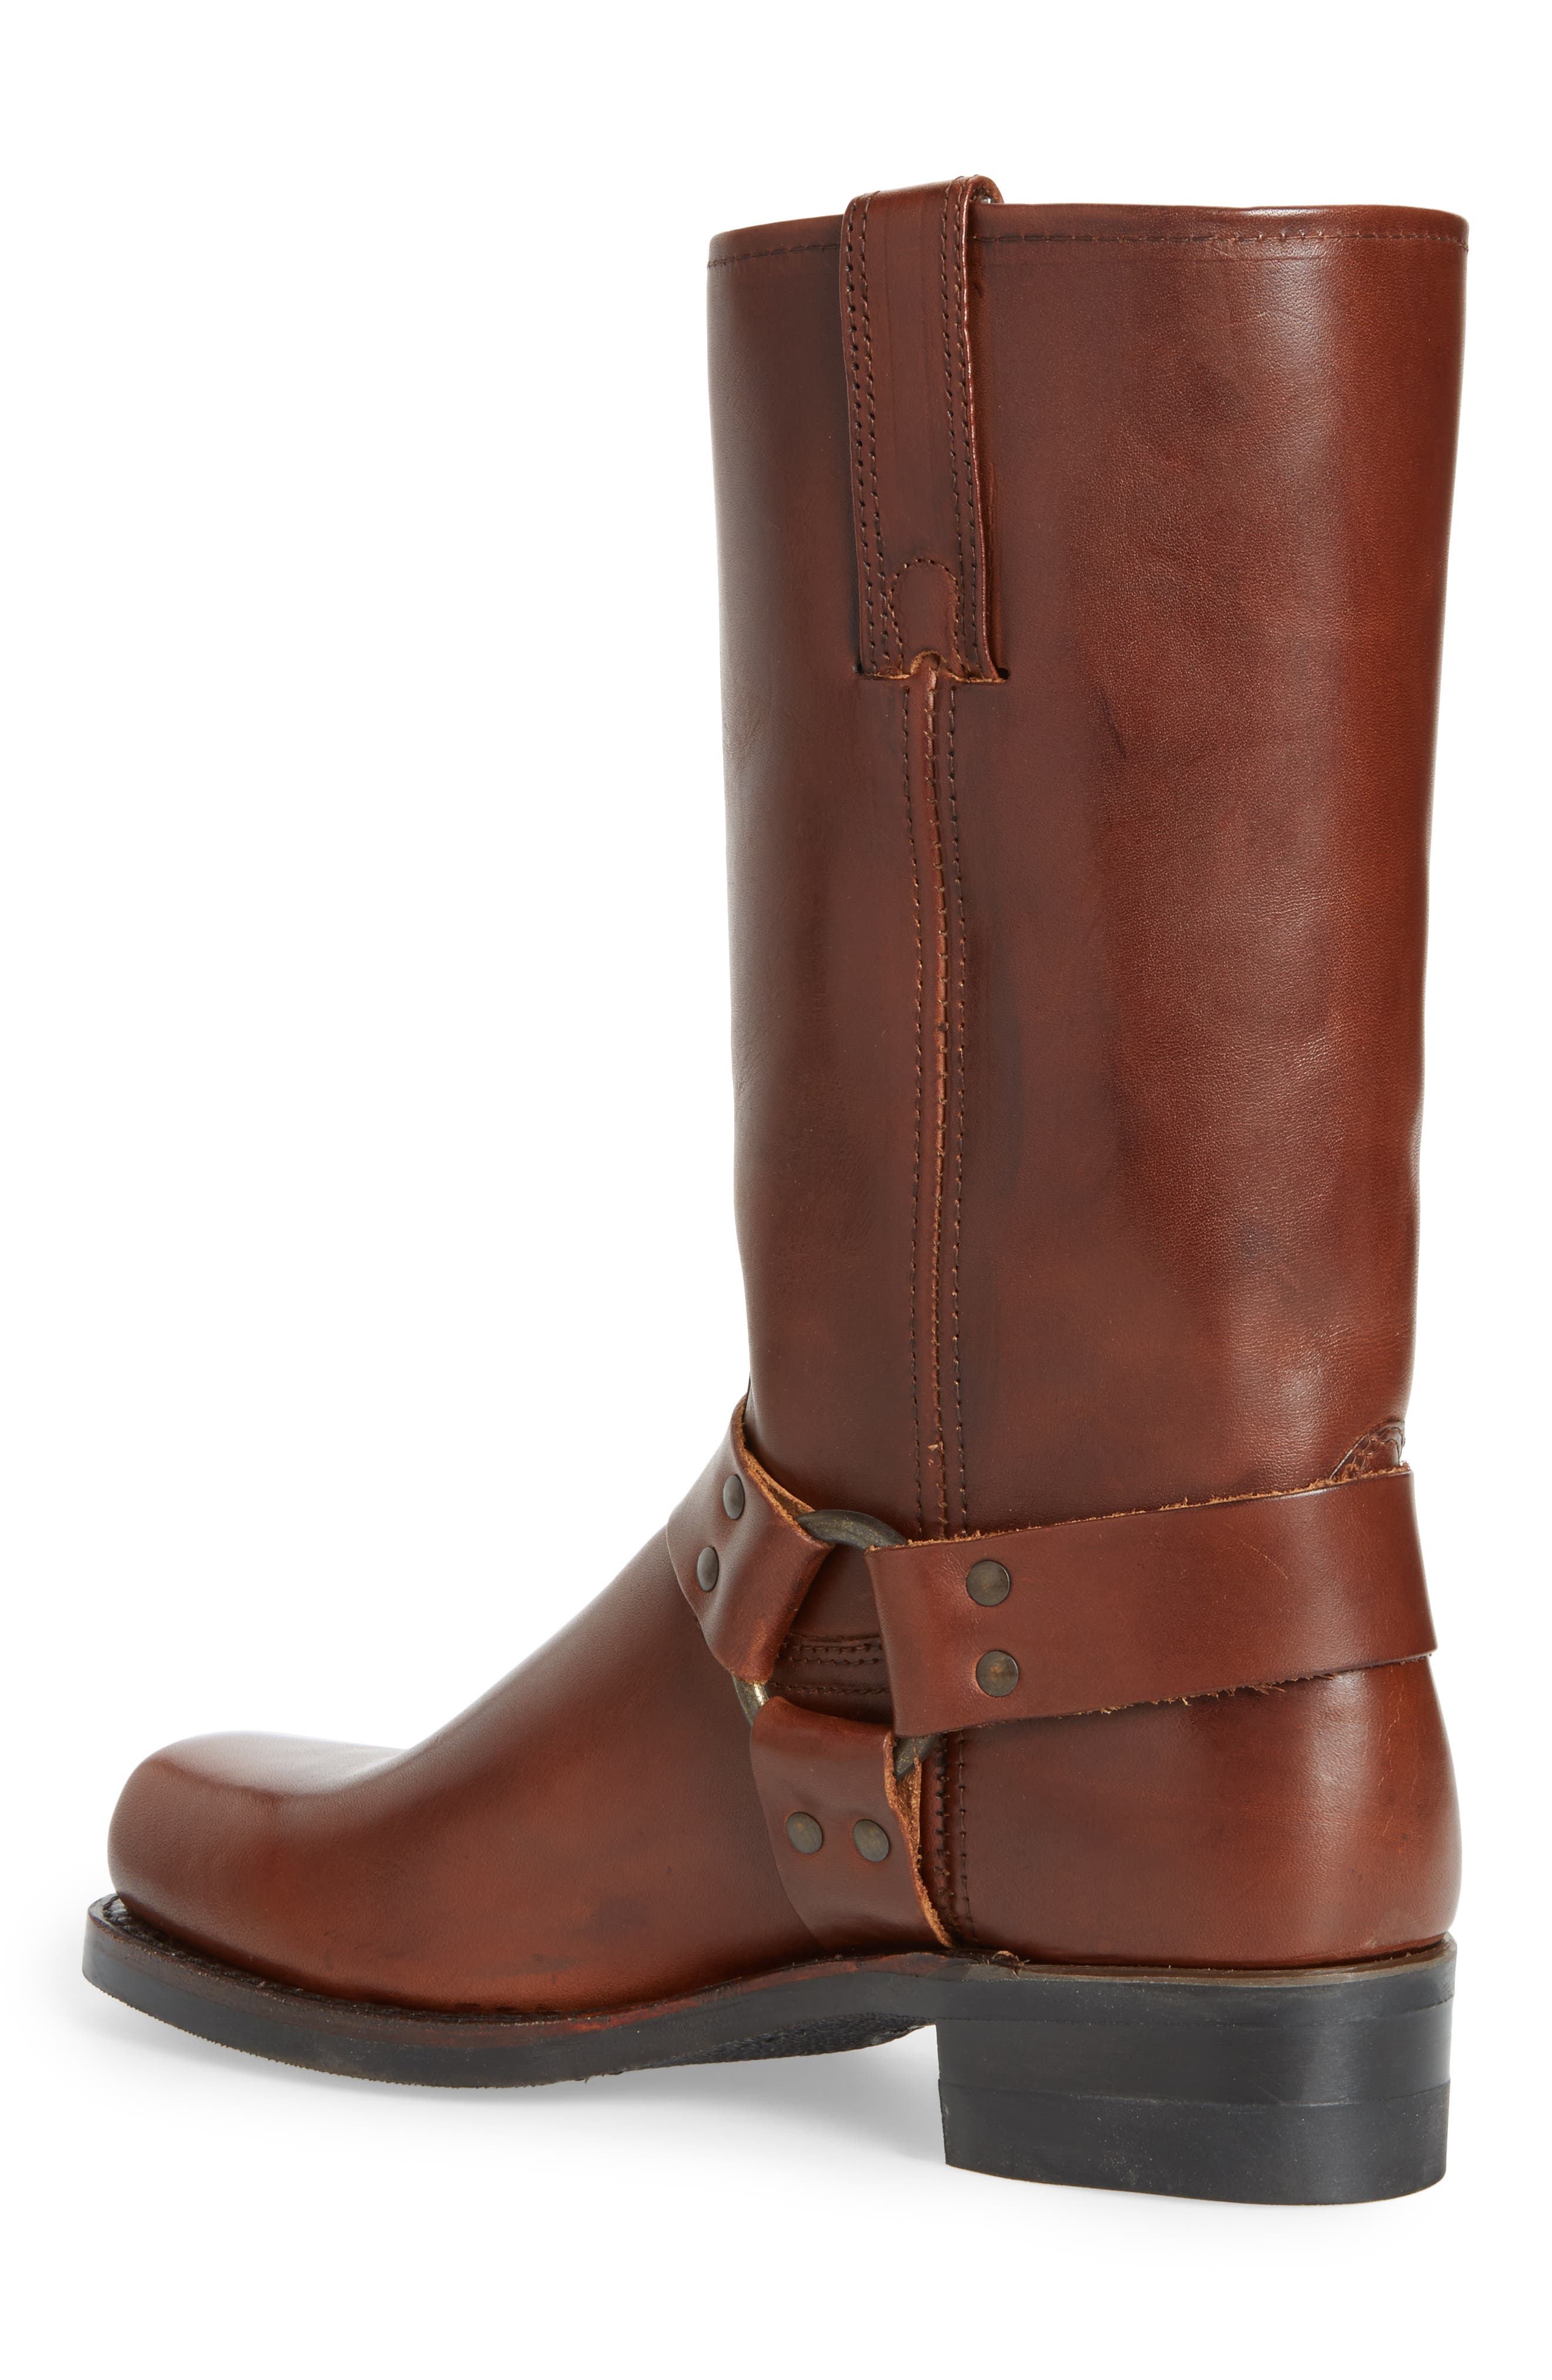 12R Harness Boot,                             Alternate thumbnail 2, color,                             218